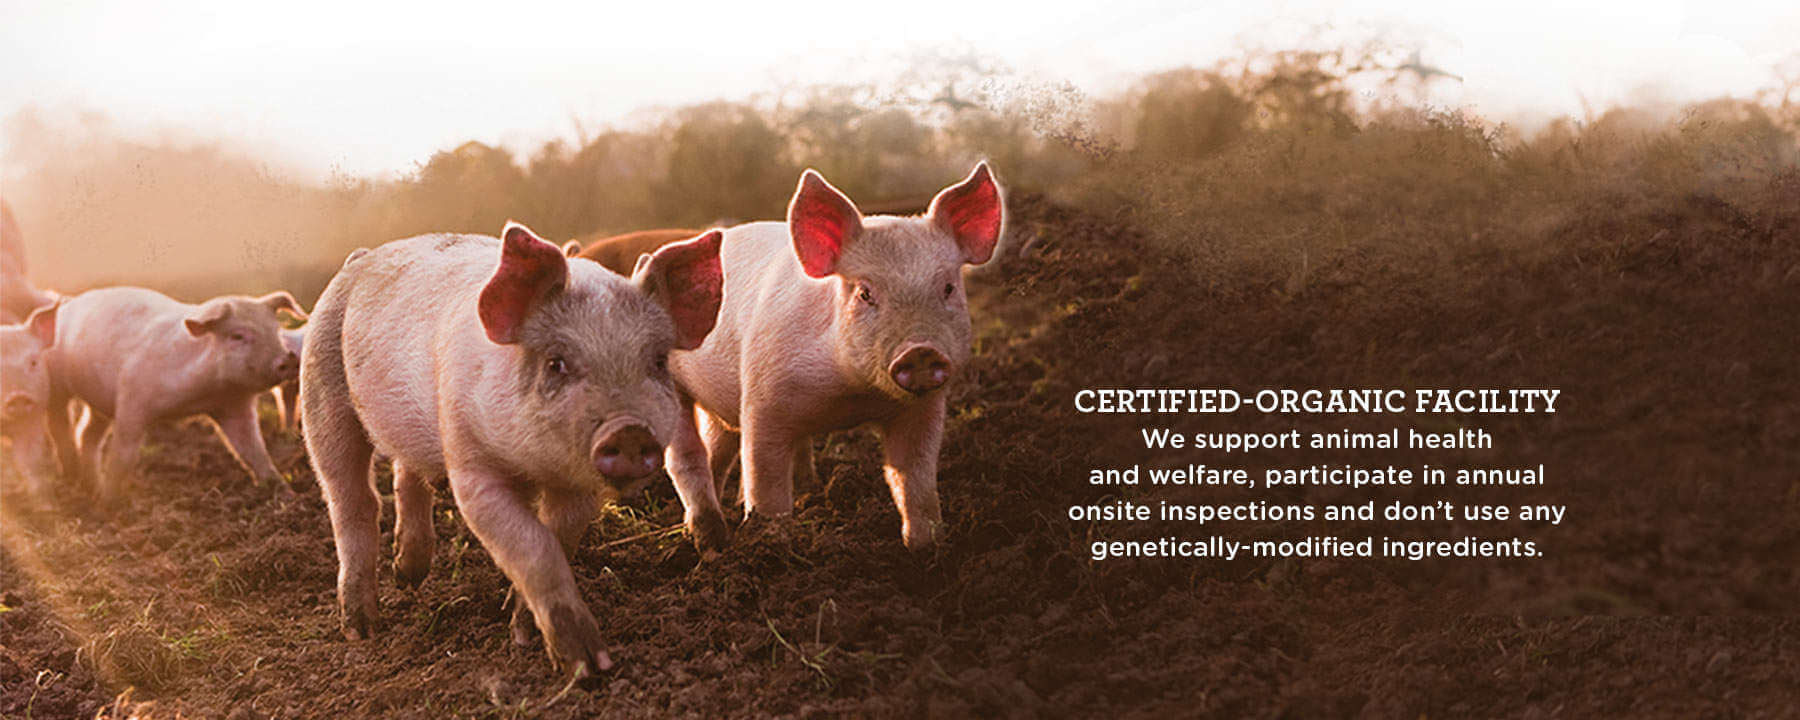 Pigs-Organic Livestock Feed-Feedex Companies